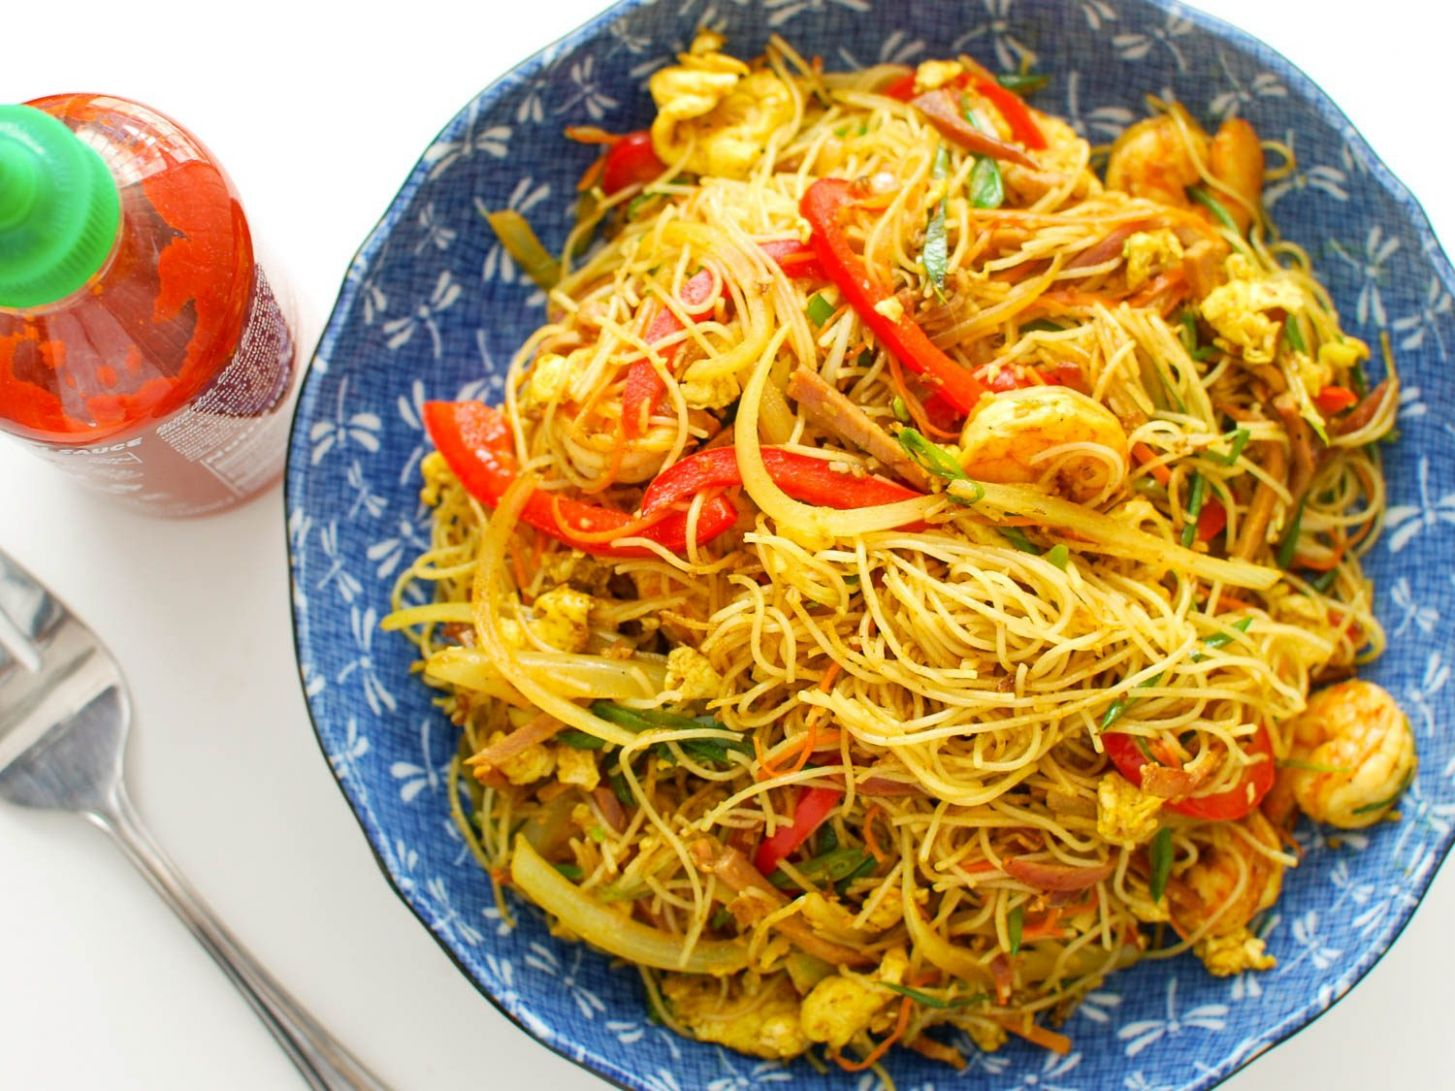 Singapore Rice Noodles Recipe - Recipes Rice Vermicelli Noodles